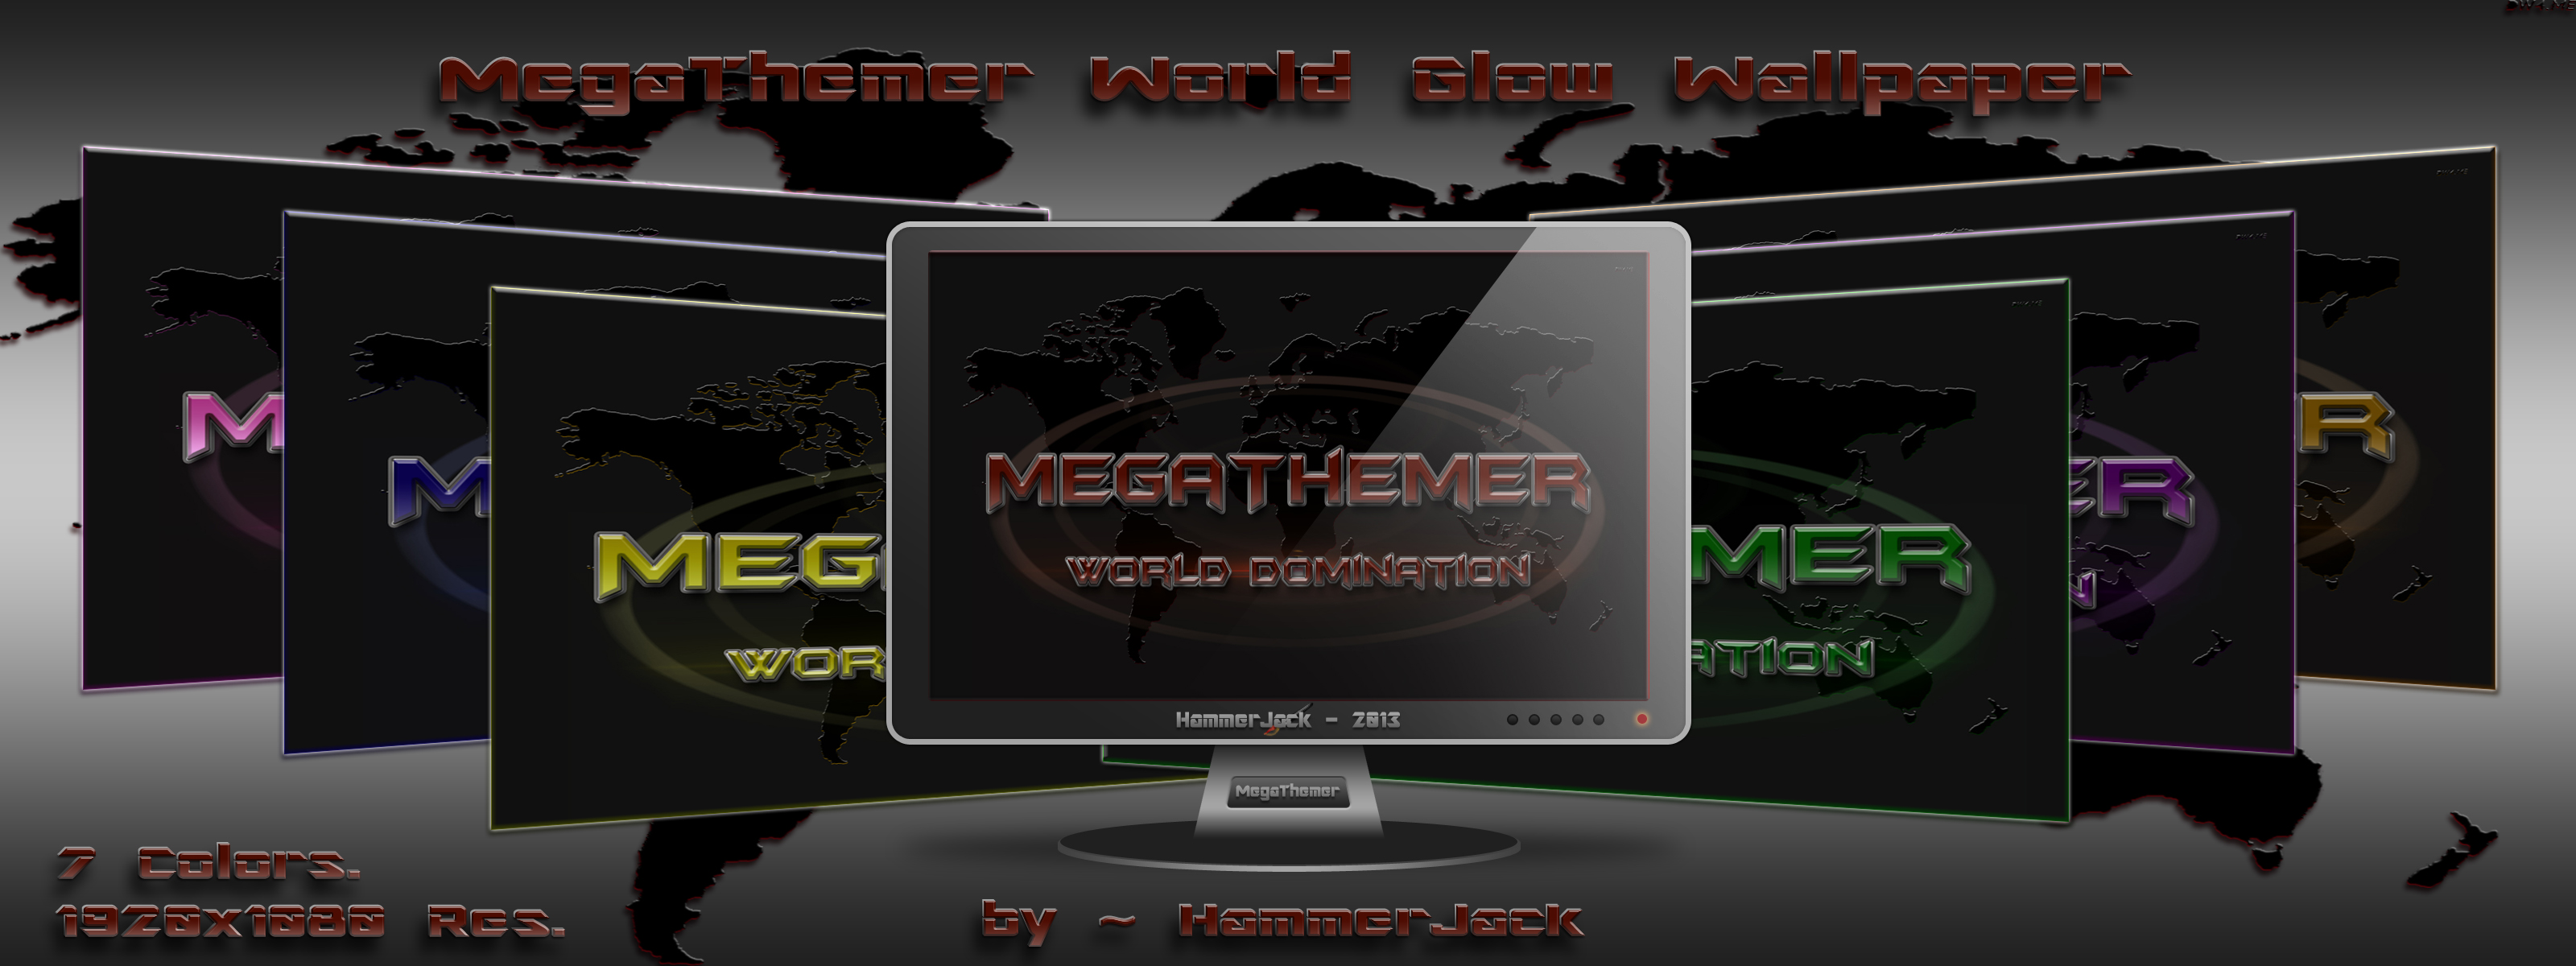 MegaThemer World Glow Wallpaper by ~ HammerJack... by mTnHJ